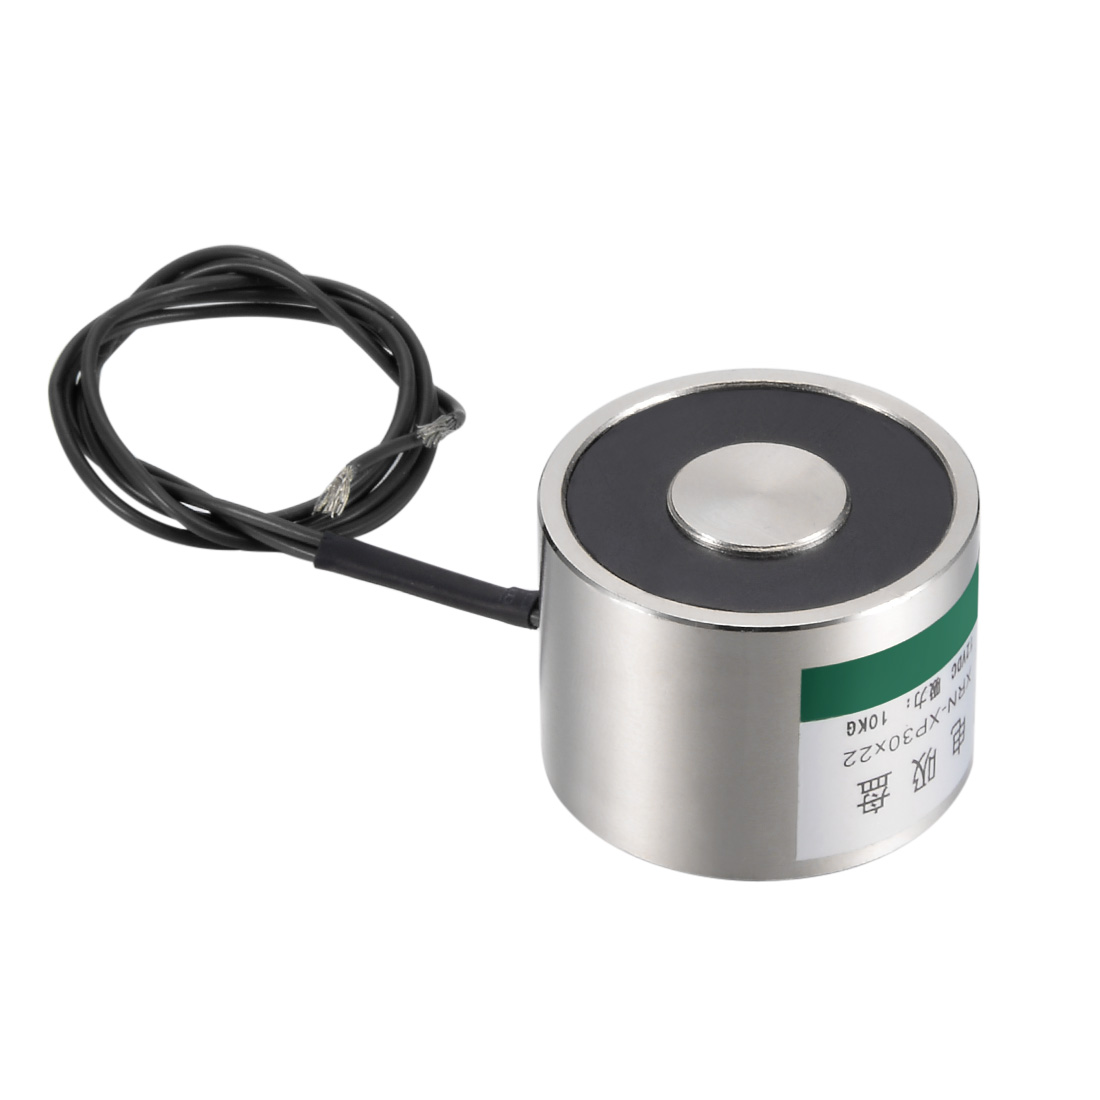 Uxcell 30mm X 22mm DC24V 100N Sucking Disc Solenoid Lift Holding Electromagnet